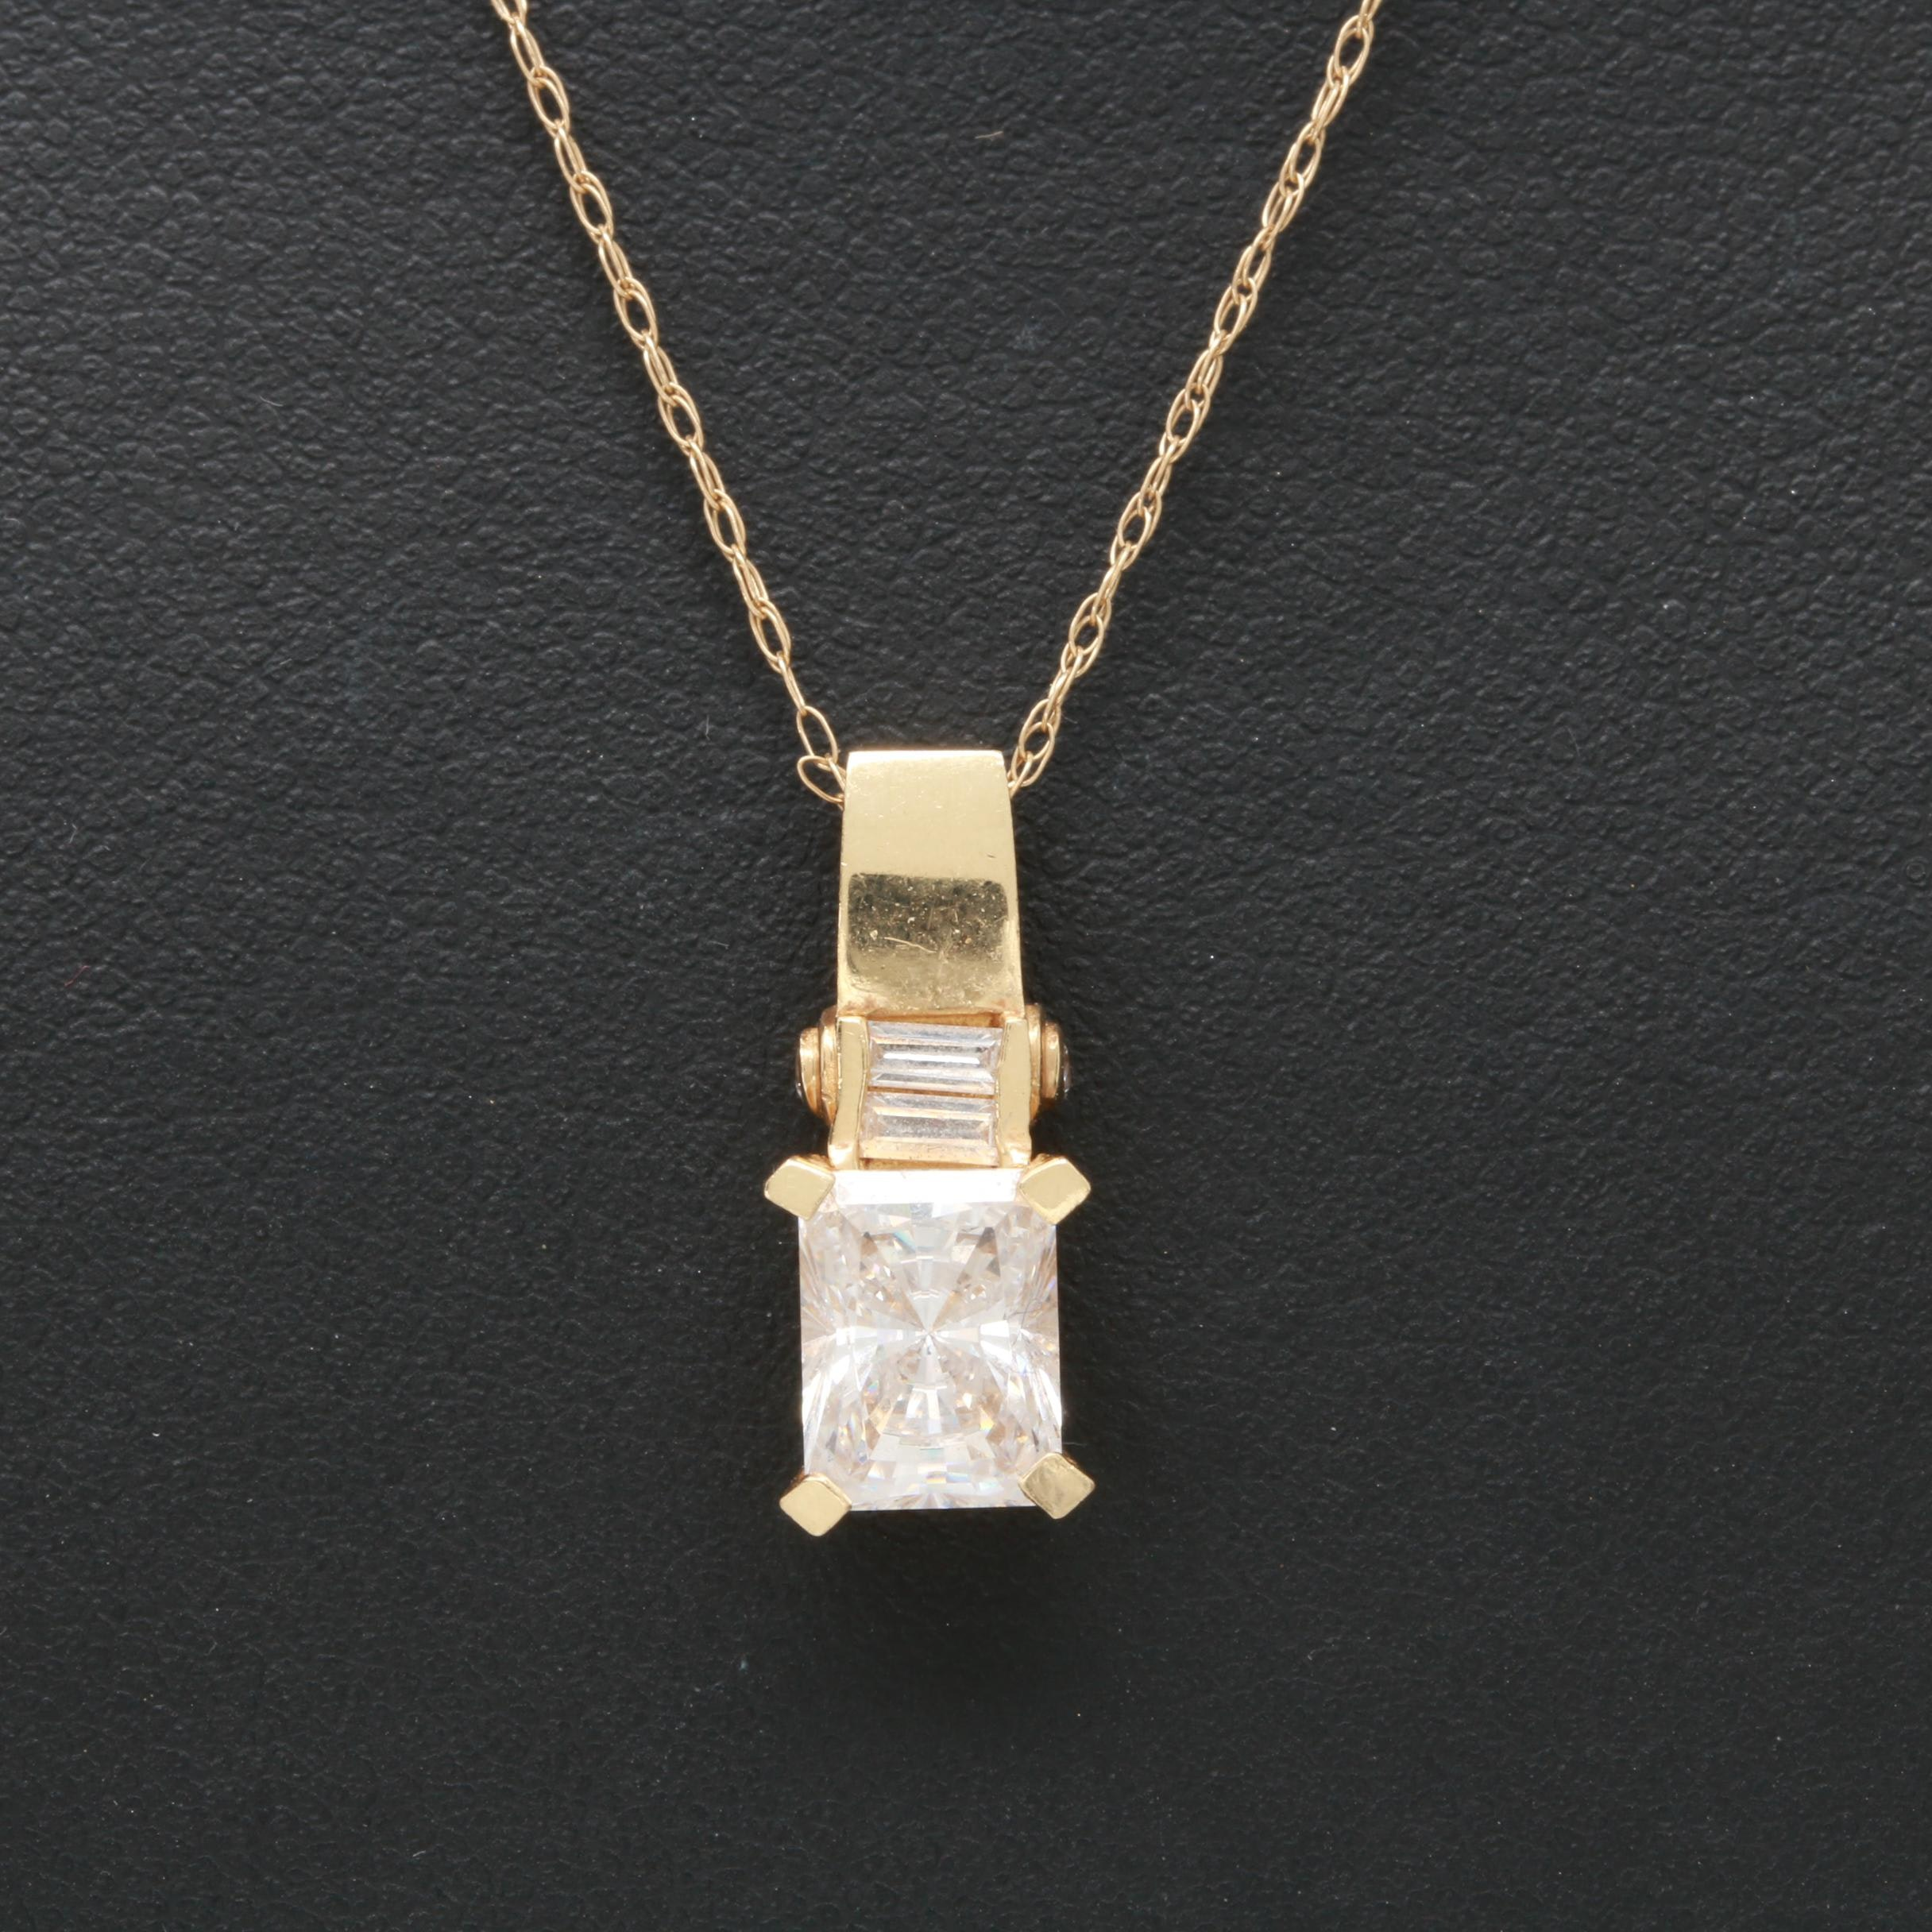 14K Yellow Gold Cubic Zirconia Necklace